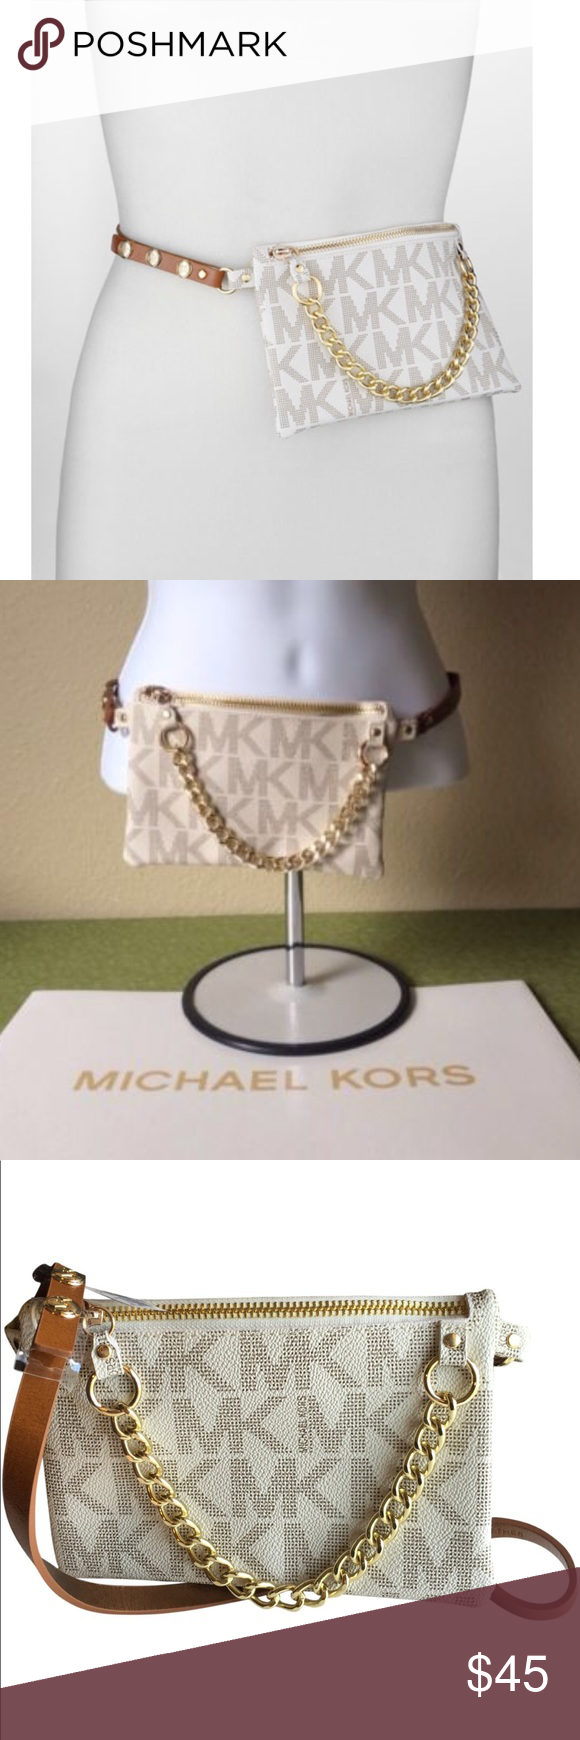 "2c8d765aa5ec Michael Kors MK Belt Bag Fanny Pack- XL NWT Authentic MK Belt Bag 3 snap  closure Size XL Bag- 7.25"" x 5"" White/Brown/Gold New with tags No trades  Price is ..."